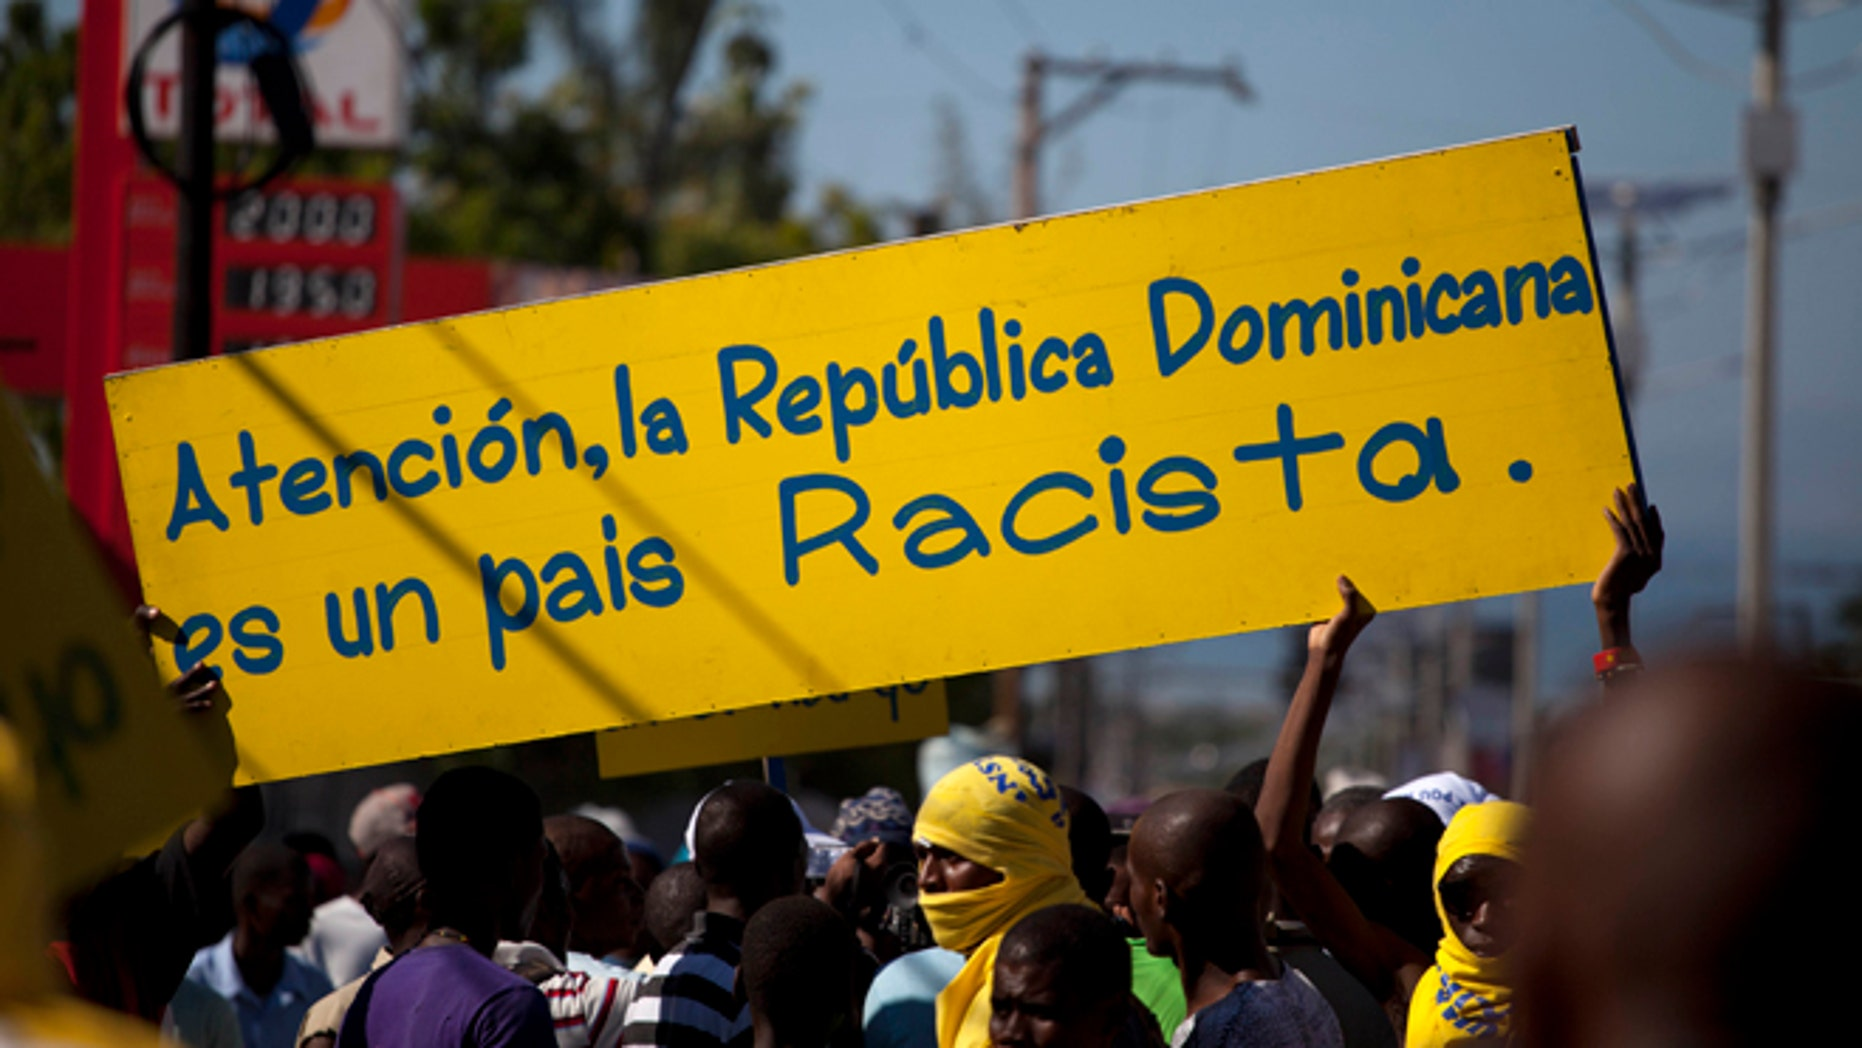 """Protesters hold a banner that reads in Spanish; """"Attention, the Dominican Republic is a racist country,"""" in Port-au-Prince, Haiti, Friday, Dec. 6, 2013. Hundreds of people gathered near the Dominica Embassy decrying a recent court decision in the Dominican Republic that could strip the citizenship of generations of people of Haitian descent living in the neighboring country. (AP Photo/Dieu Nalio Chery)"""